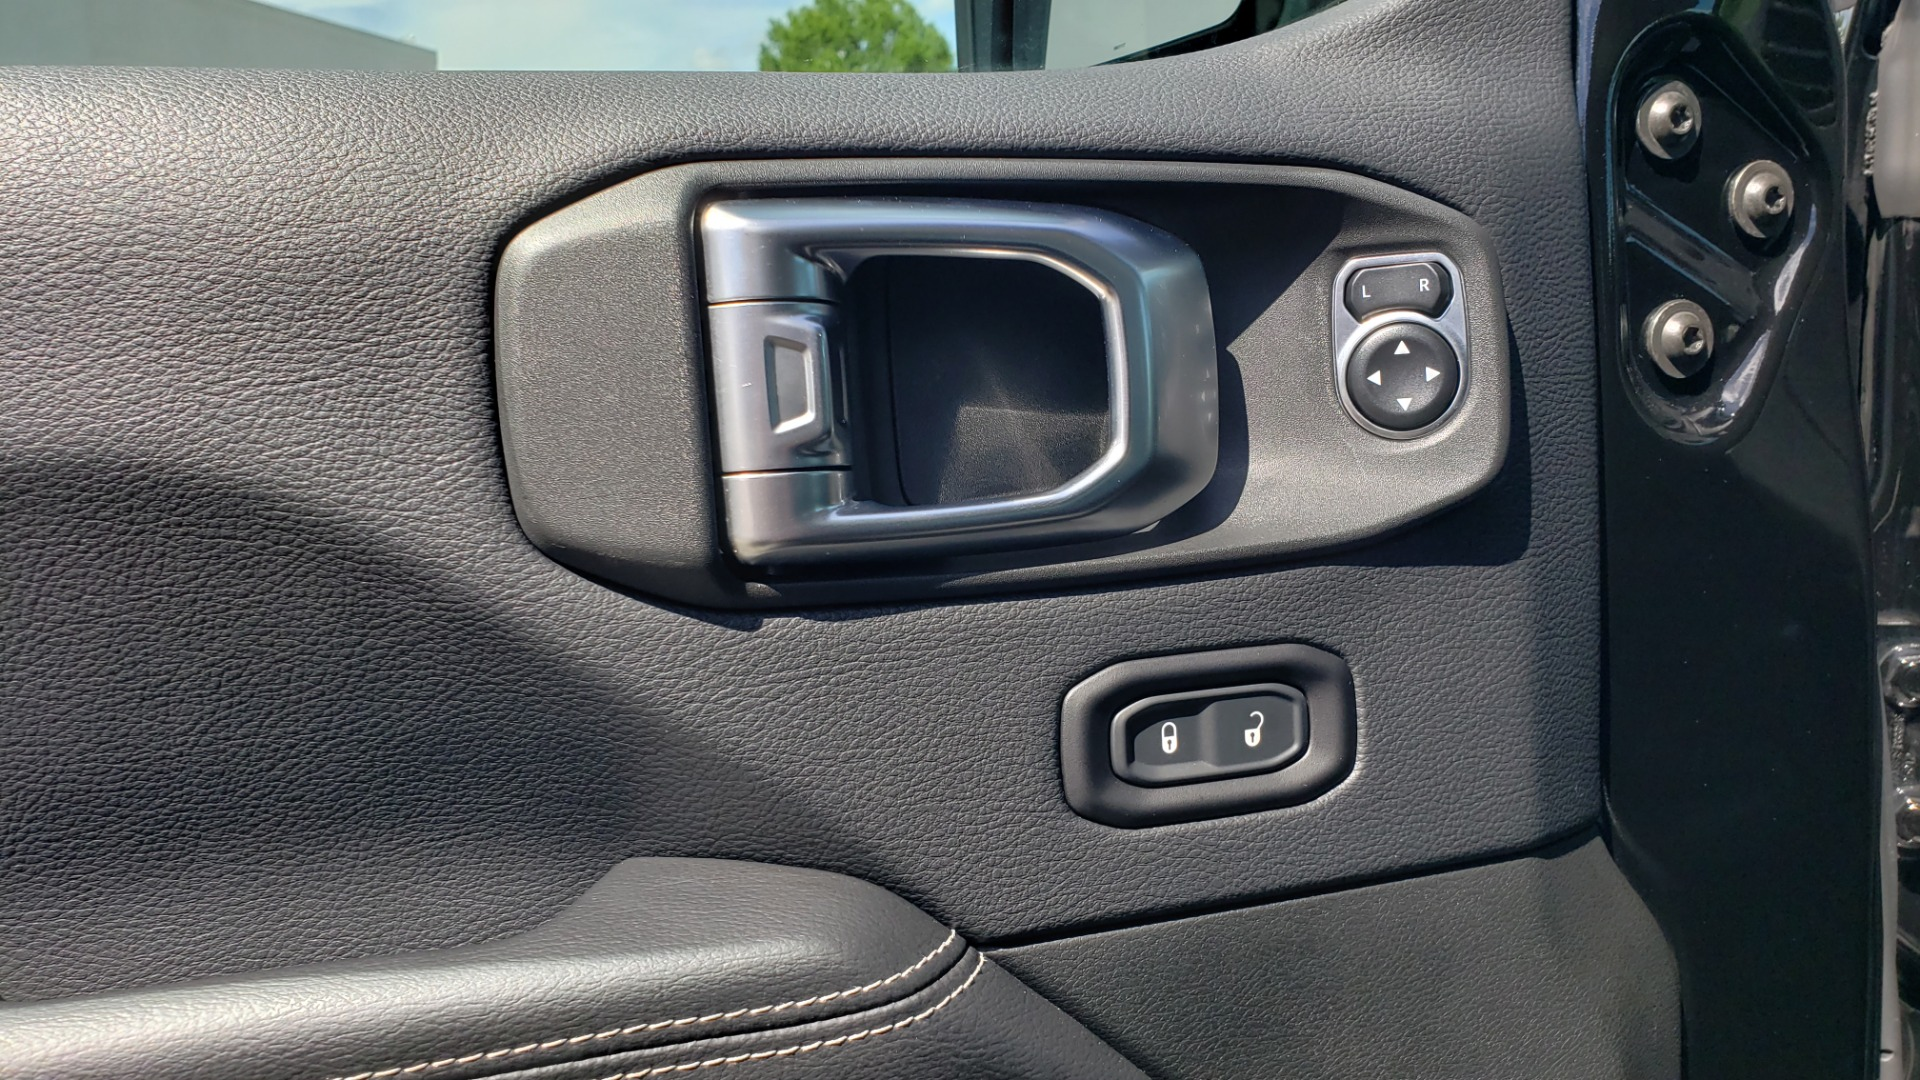 Used 2018 Jeep WRANGLER UNLIMITED SAHARA / 3.6L V6 / 6-SPD MAN / ALPINE / NAV / HTD STS / REARVIEW for sale $43,999 at Formula Imports in Charlotte NC 28227 49